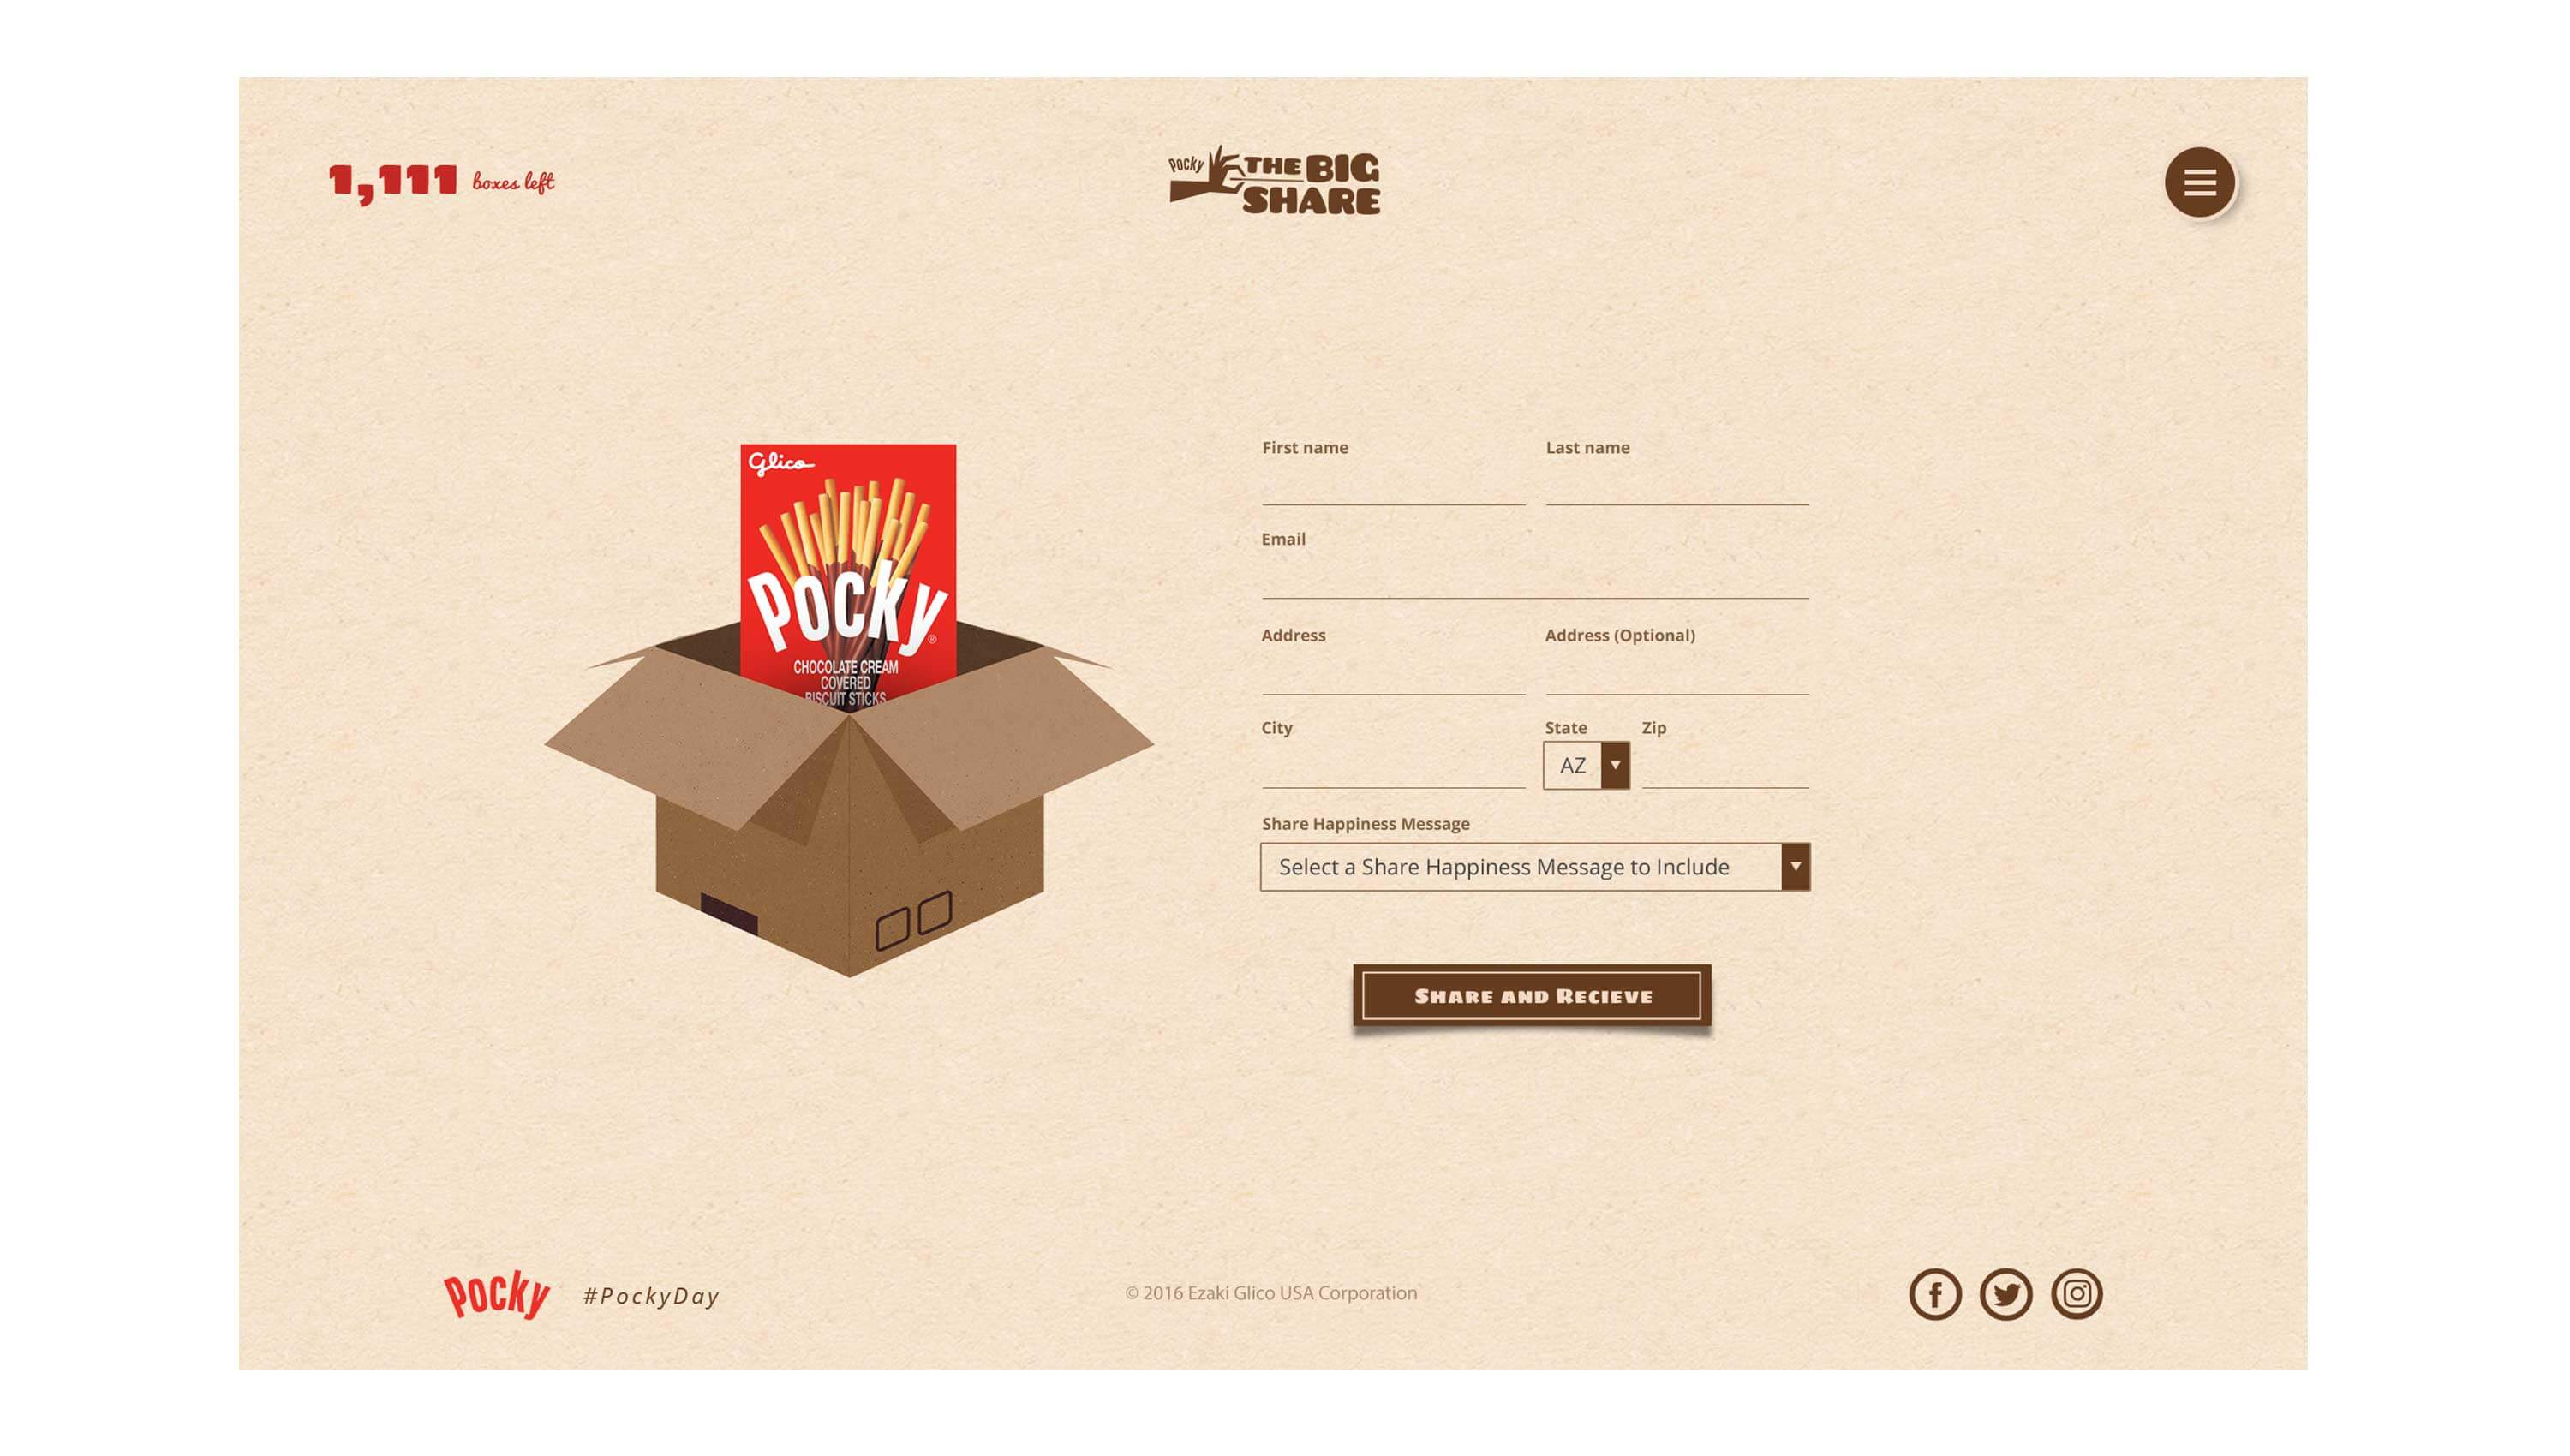 Pocky Day microsite share a box